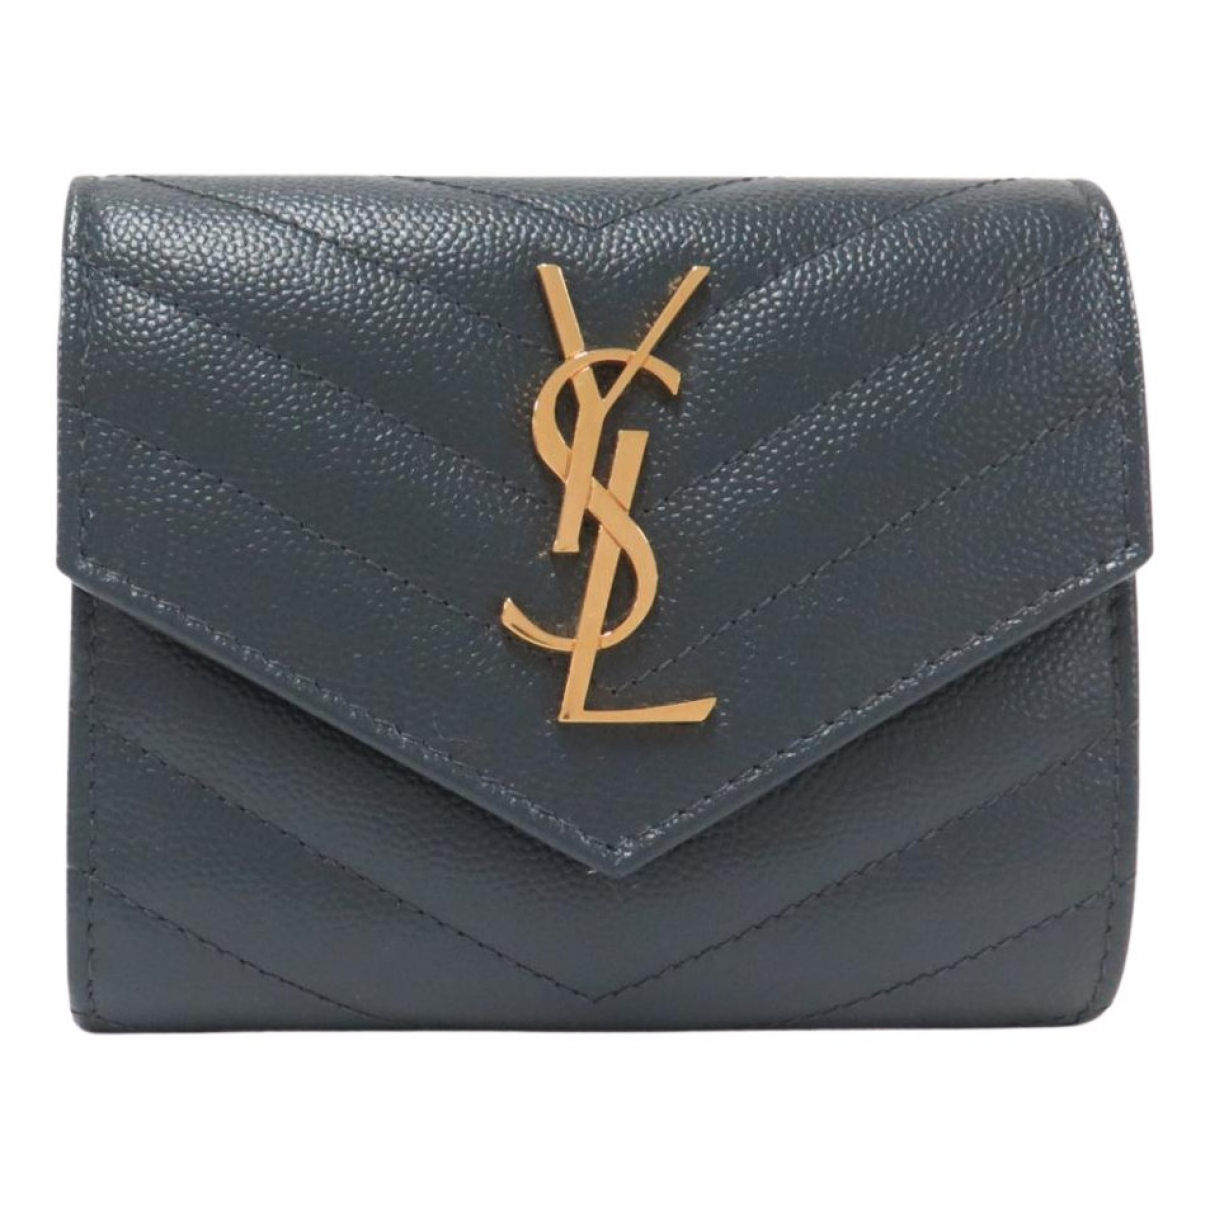 Saint Laurent Monogramme Grey Leather wallet for Women N